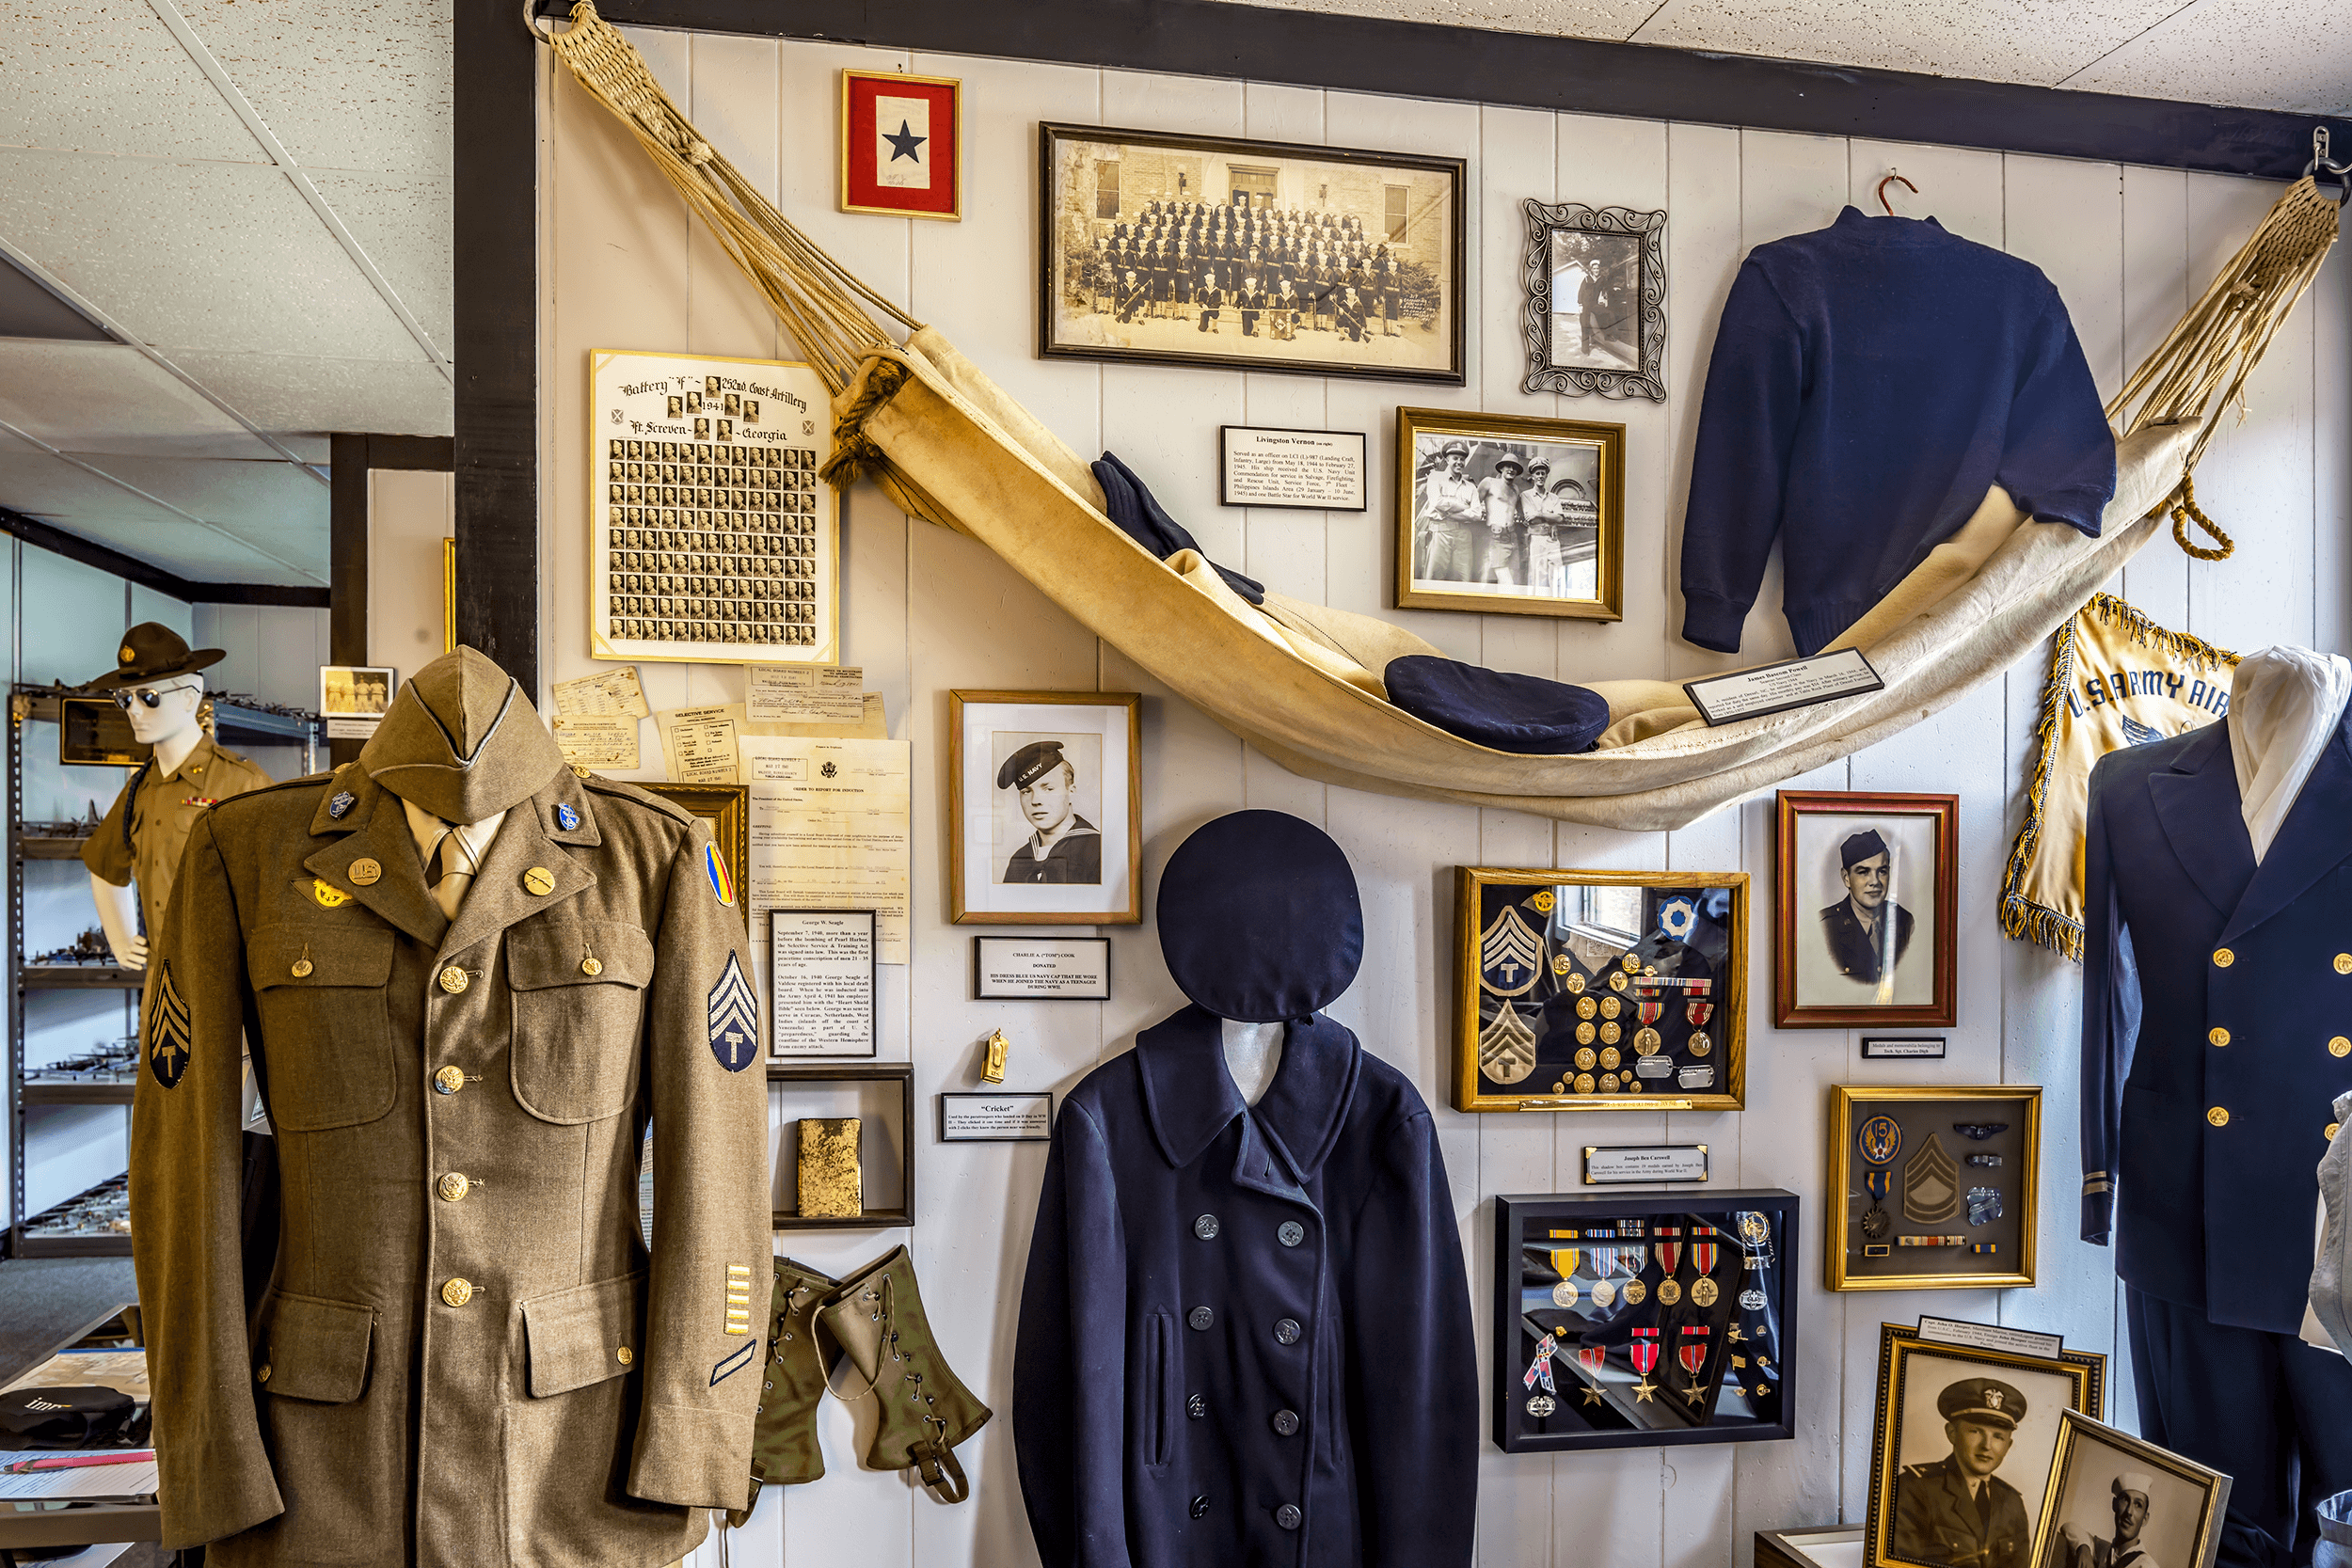 """The hammock on display belonged to resident James B. Powell of Drexel NC, who enlisted in the U.S. Navy in 1944. Small treasures can always be found throughout the museum, such as a """"Cricket"""", which was used by the paratroopers, who landed on D-Day in WWII, to identify whether the person near them was friend or foe. They clicked it one time, and when they received a two-click response, they knew that the person was friendly."""